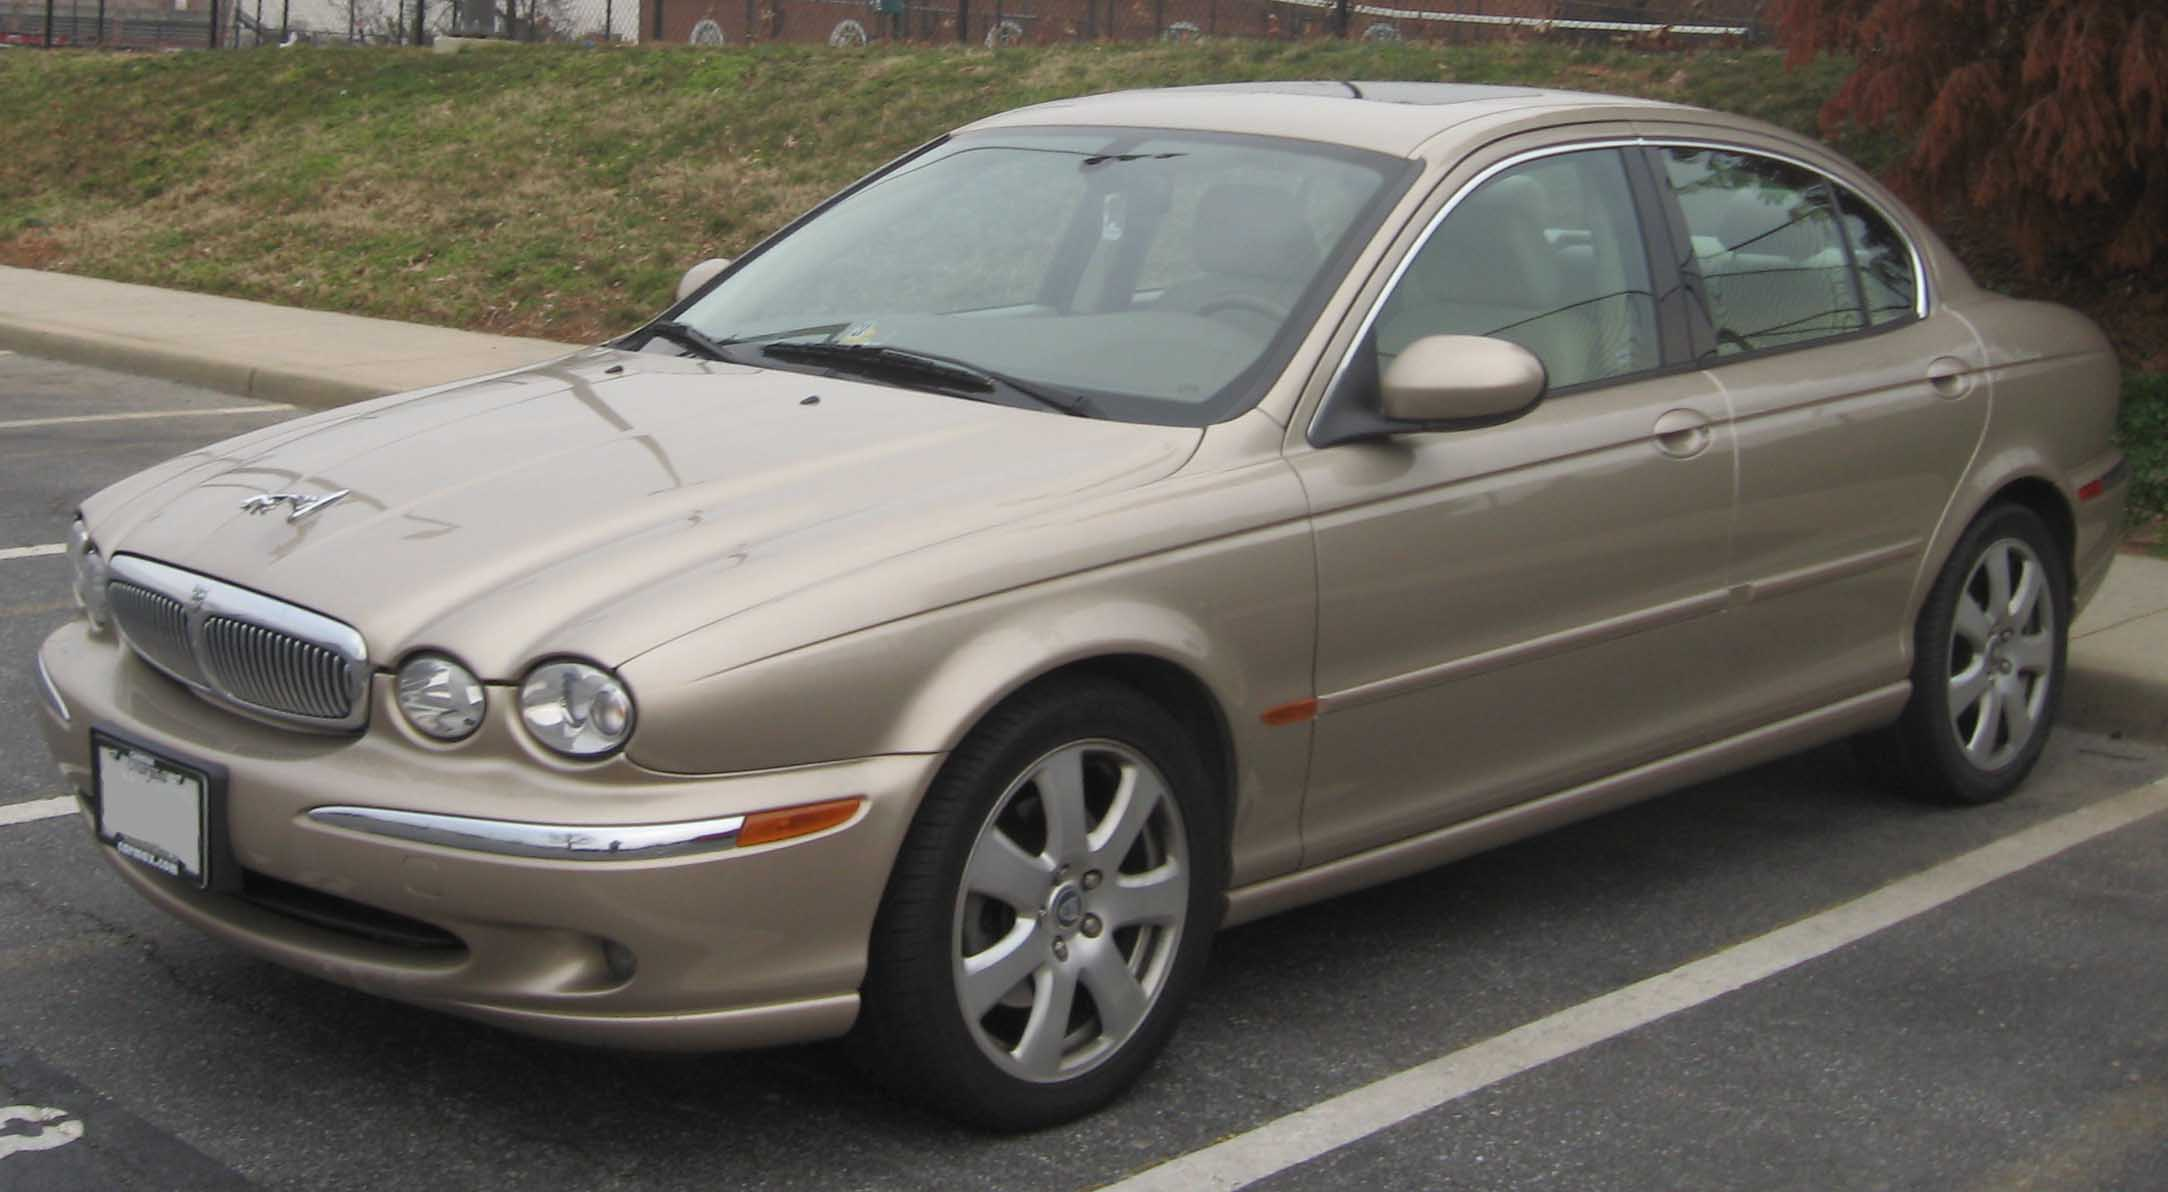 File Jaguar X-Type sed...